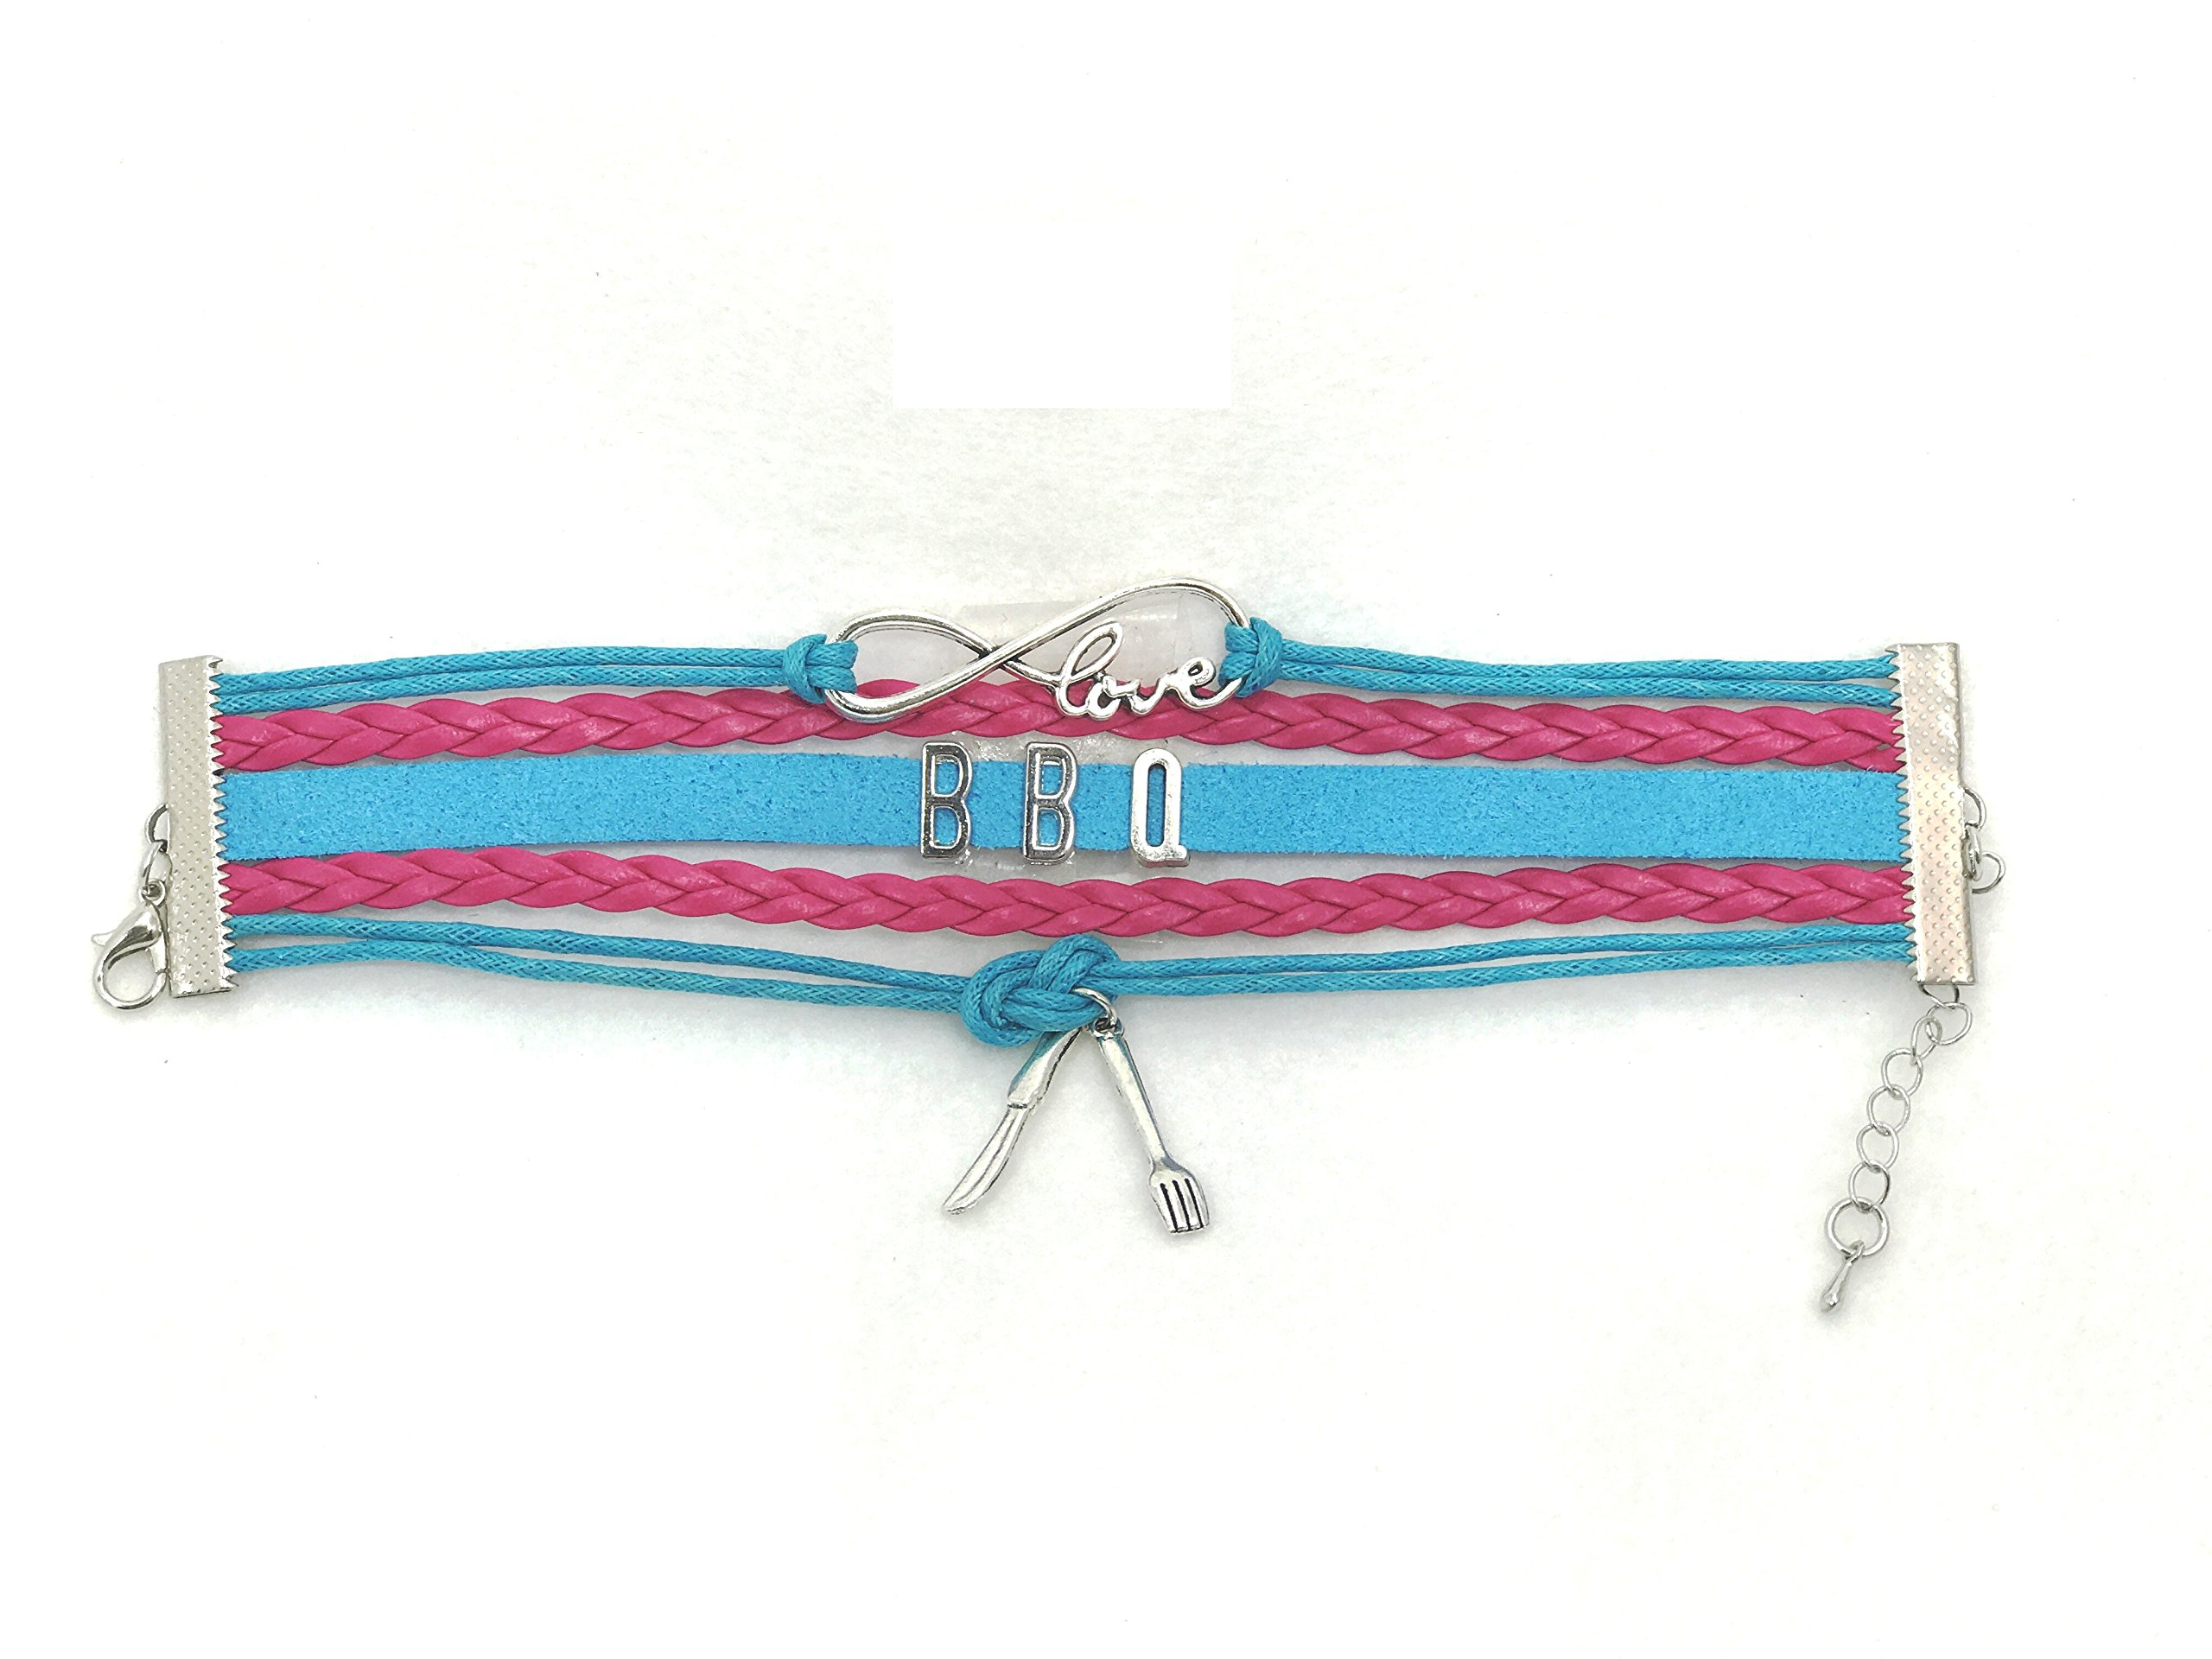 - Love for BBQ Wrist Band ( pink and turquoise ) DangiTM